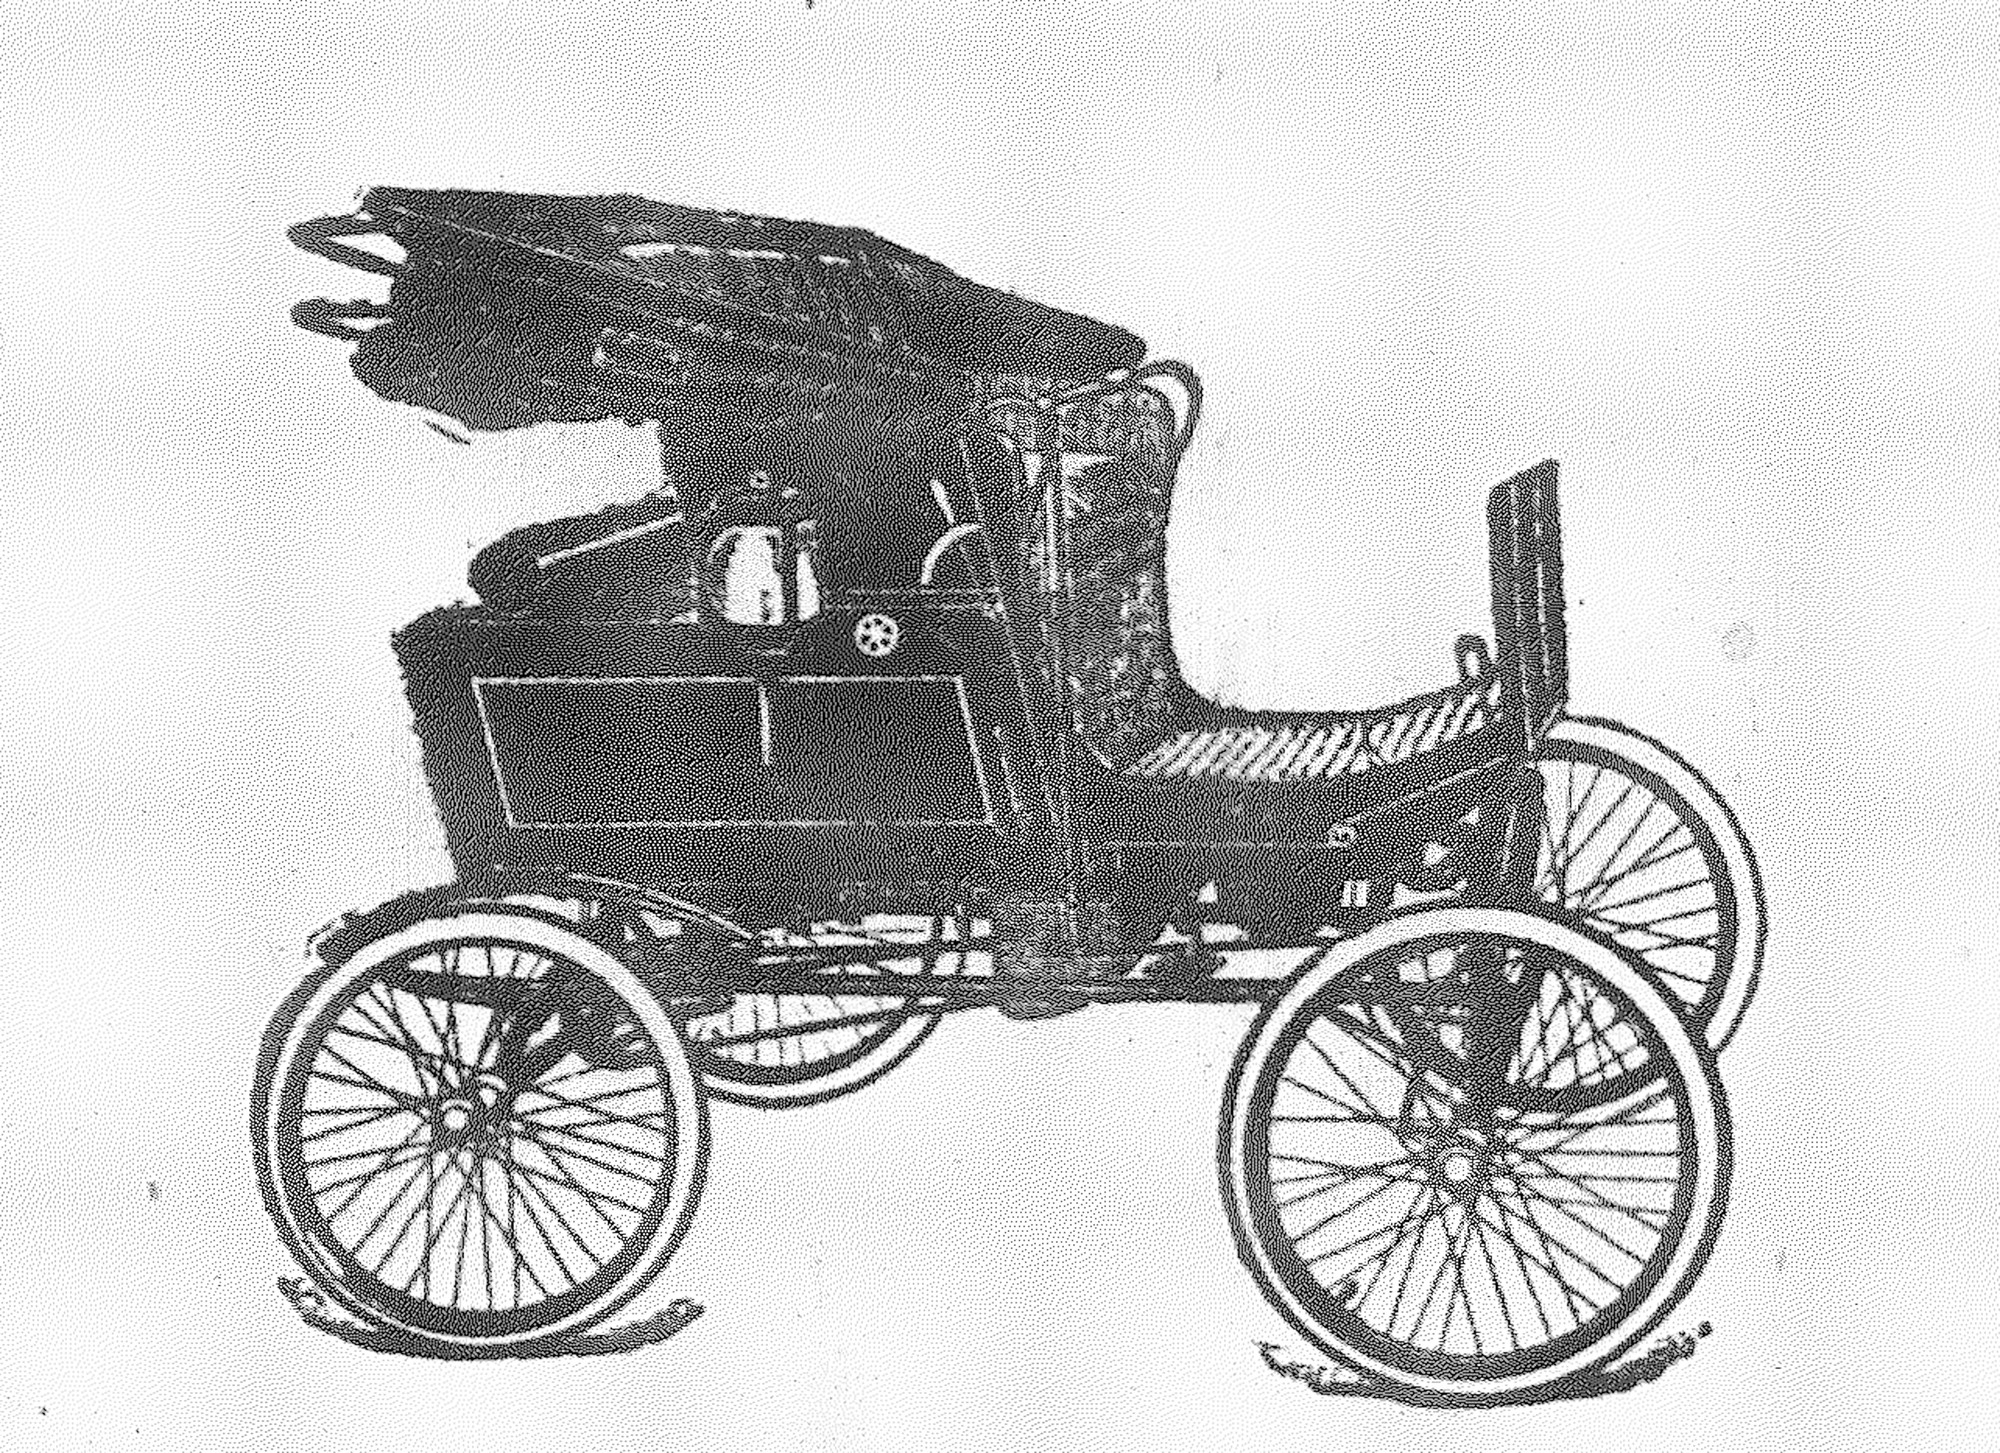 The Locomobile was operated by steam and was bought by H. C. Bland of Mayesville and shipped to Sumter from Connecticut in 1901.